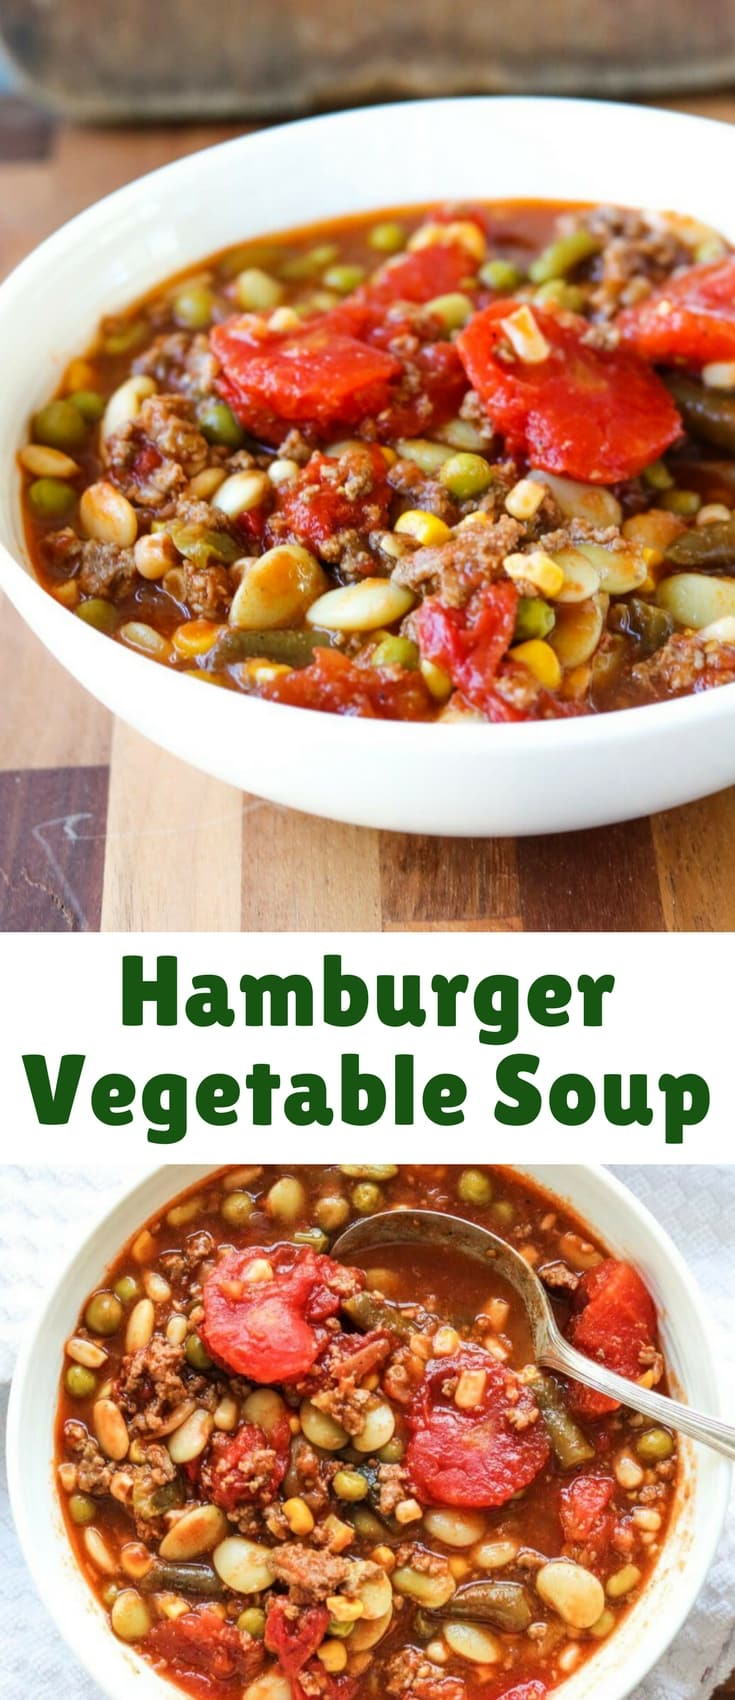 This Hamburger Vegetable Soup is hearty and flavorful and warms you from head to toe. And with so many veggie combinations available, it's totally customizeable to your tastes!